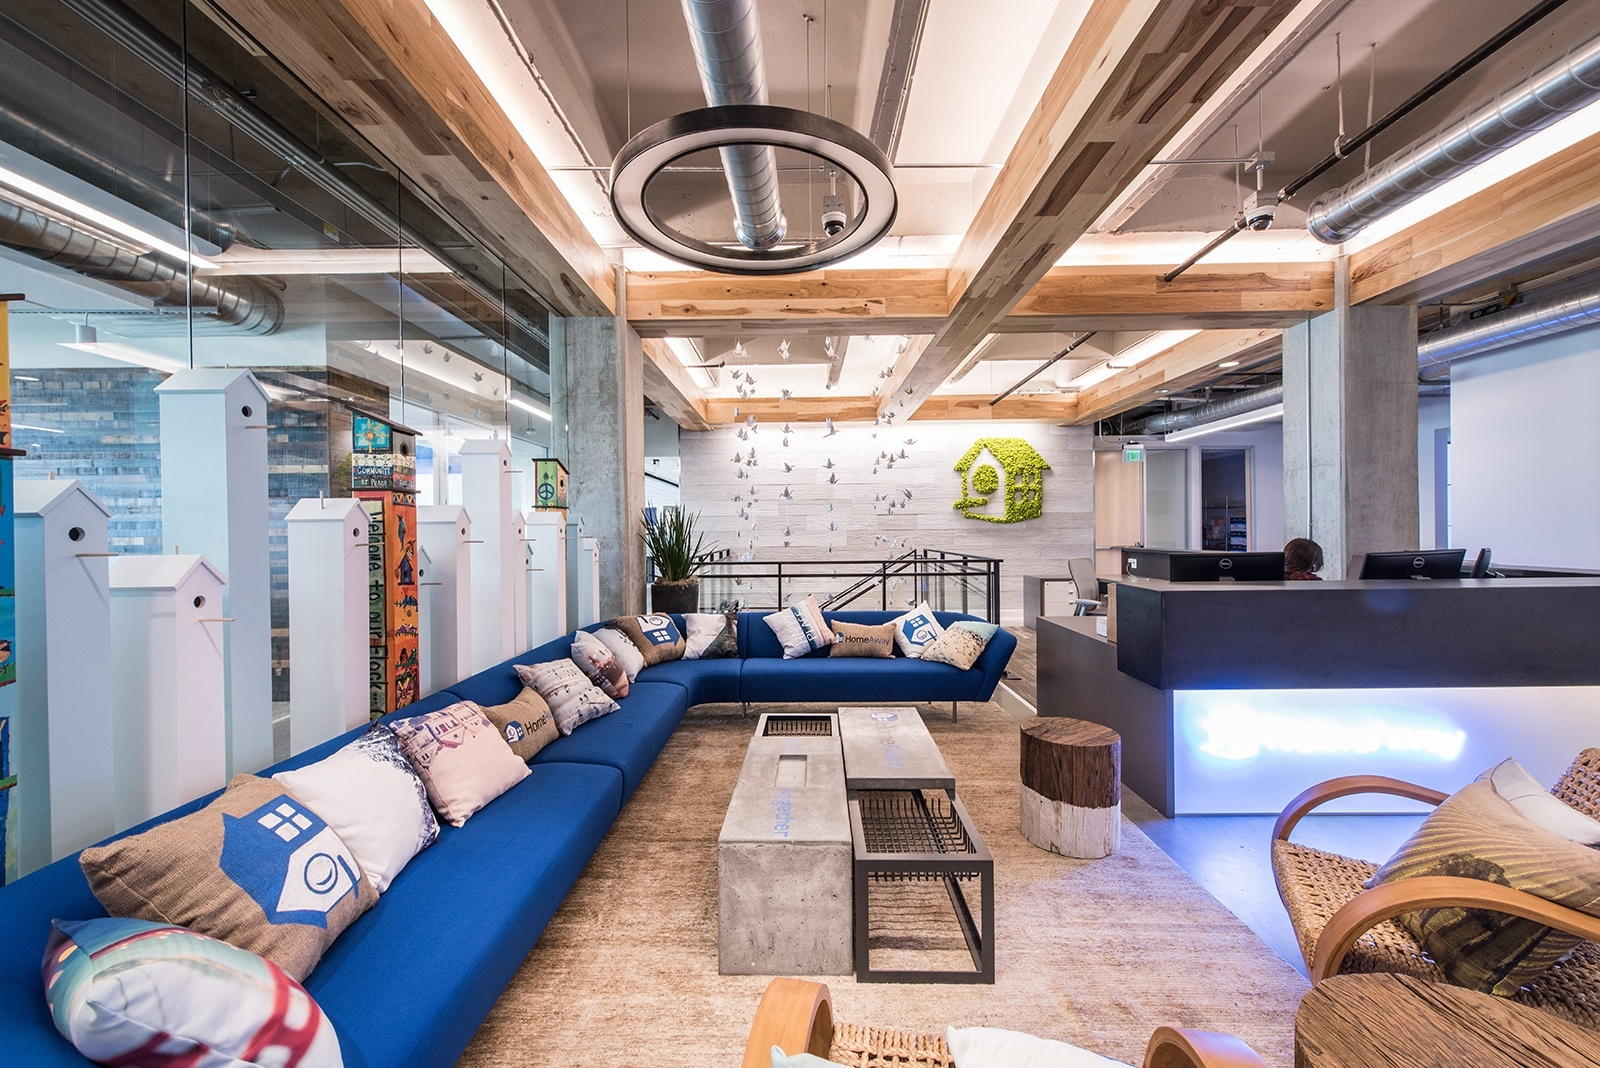 A Tour of HomeAway's Beautiful New Office - Officelovin'